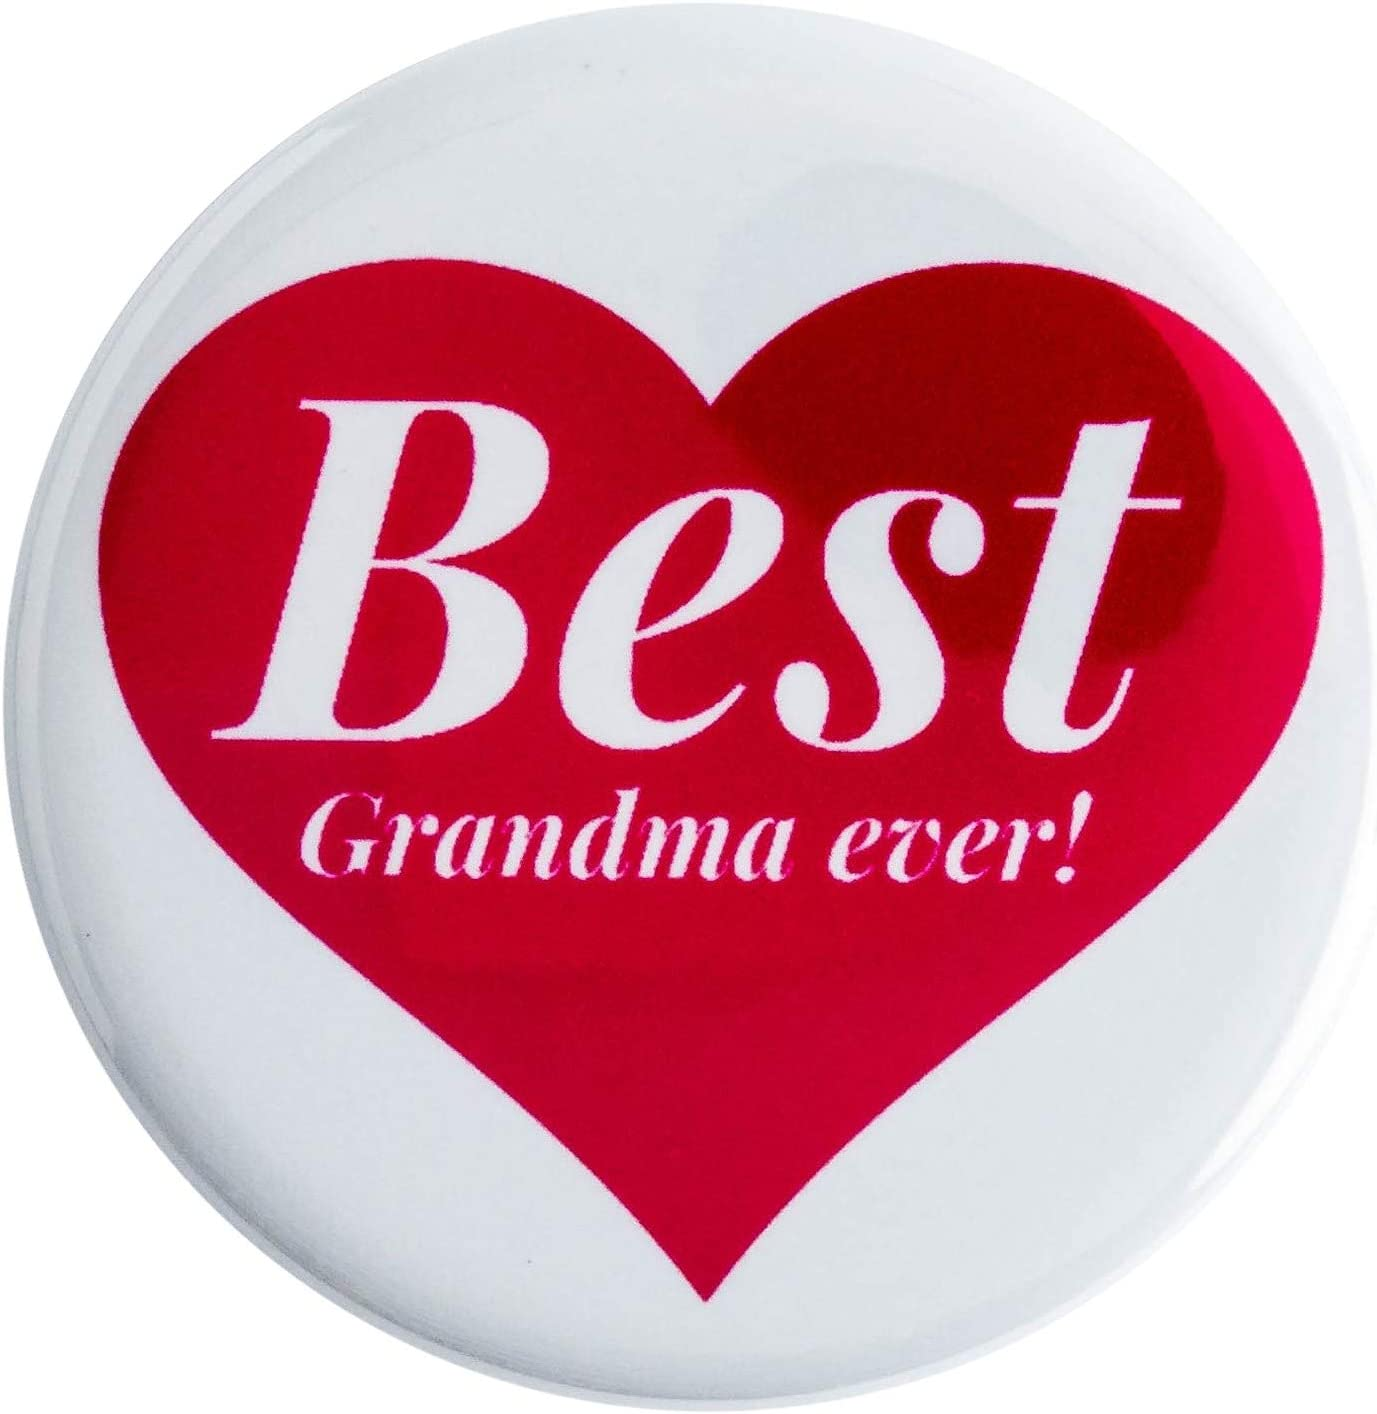 Granny Mother Mum The Only Thing Small Plastic Fridge Magnet Keepsake Card Favour